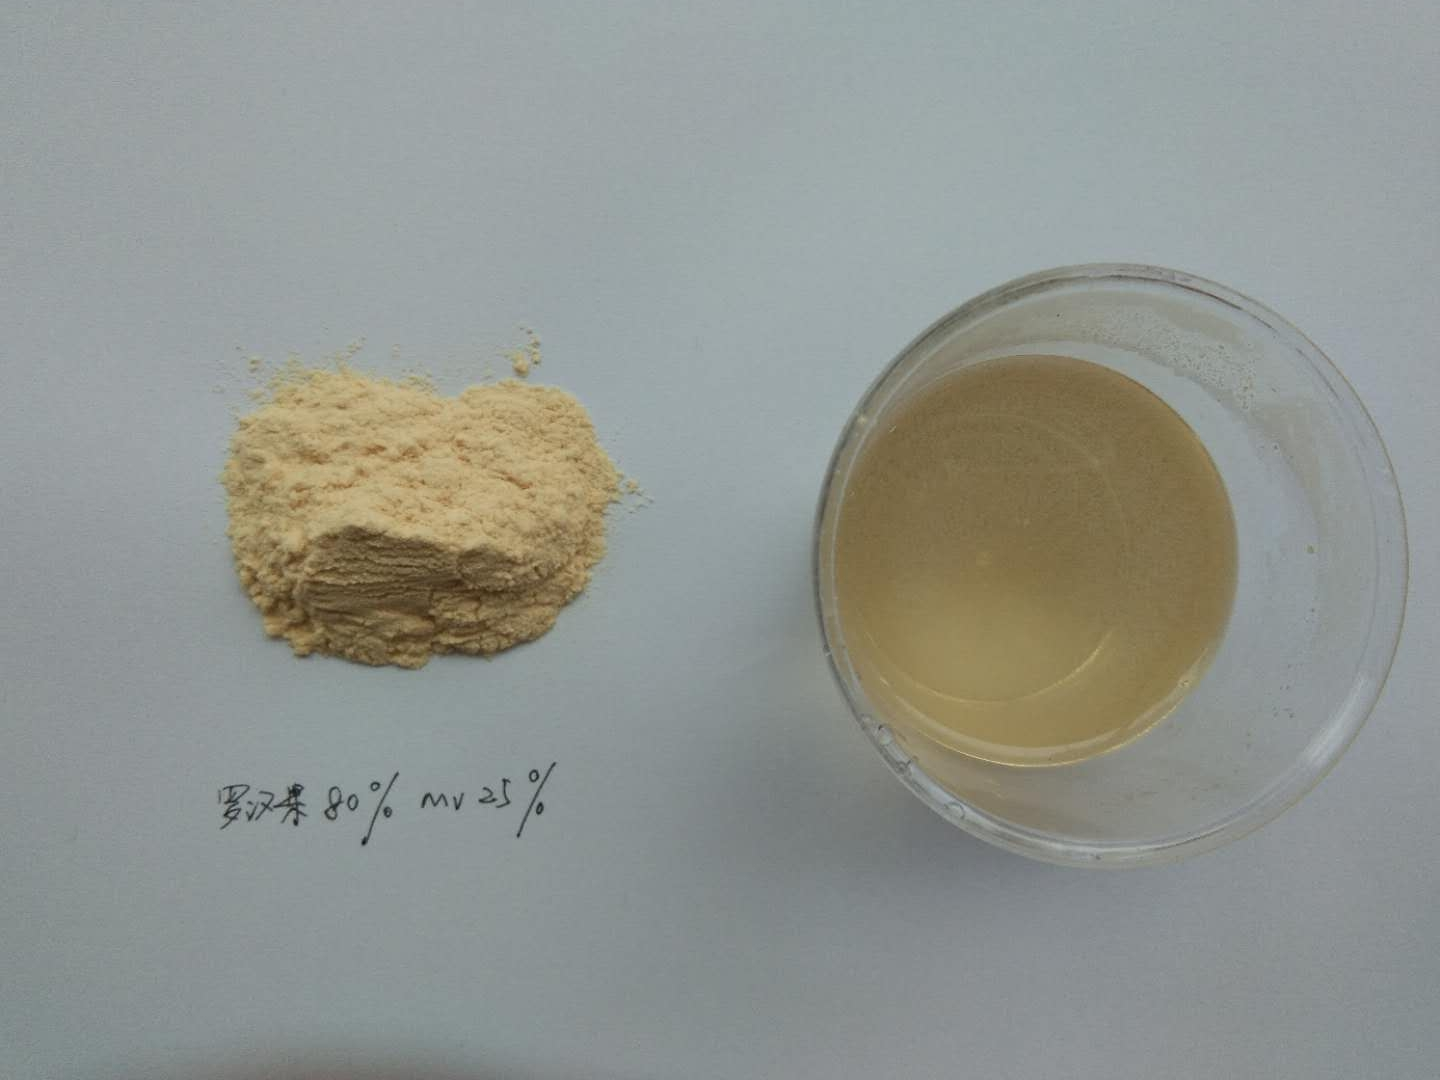 Luo Han Guo Extract